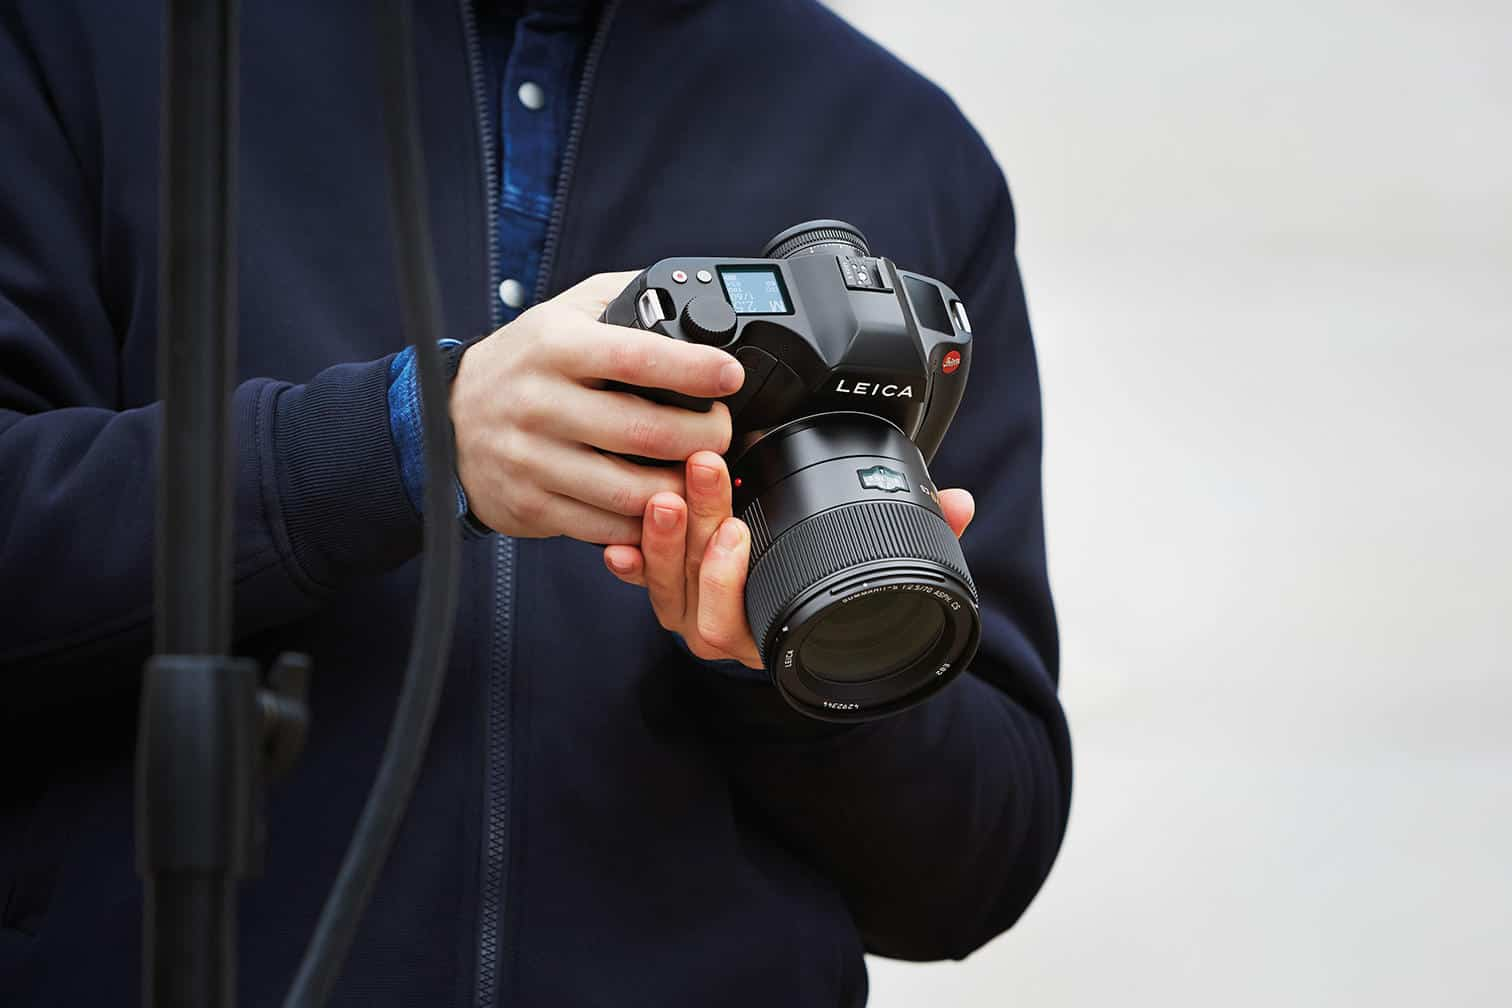 The new Leica S3 Takes Medium Format DSLRs to the Next Level